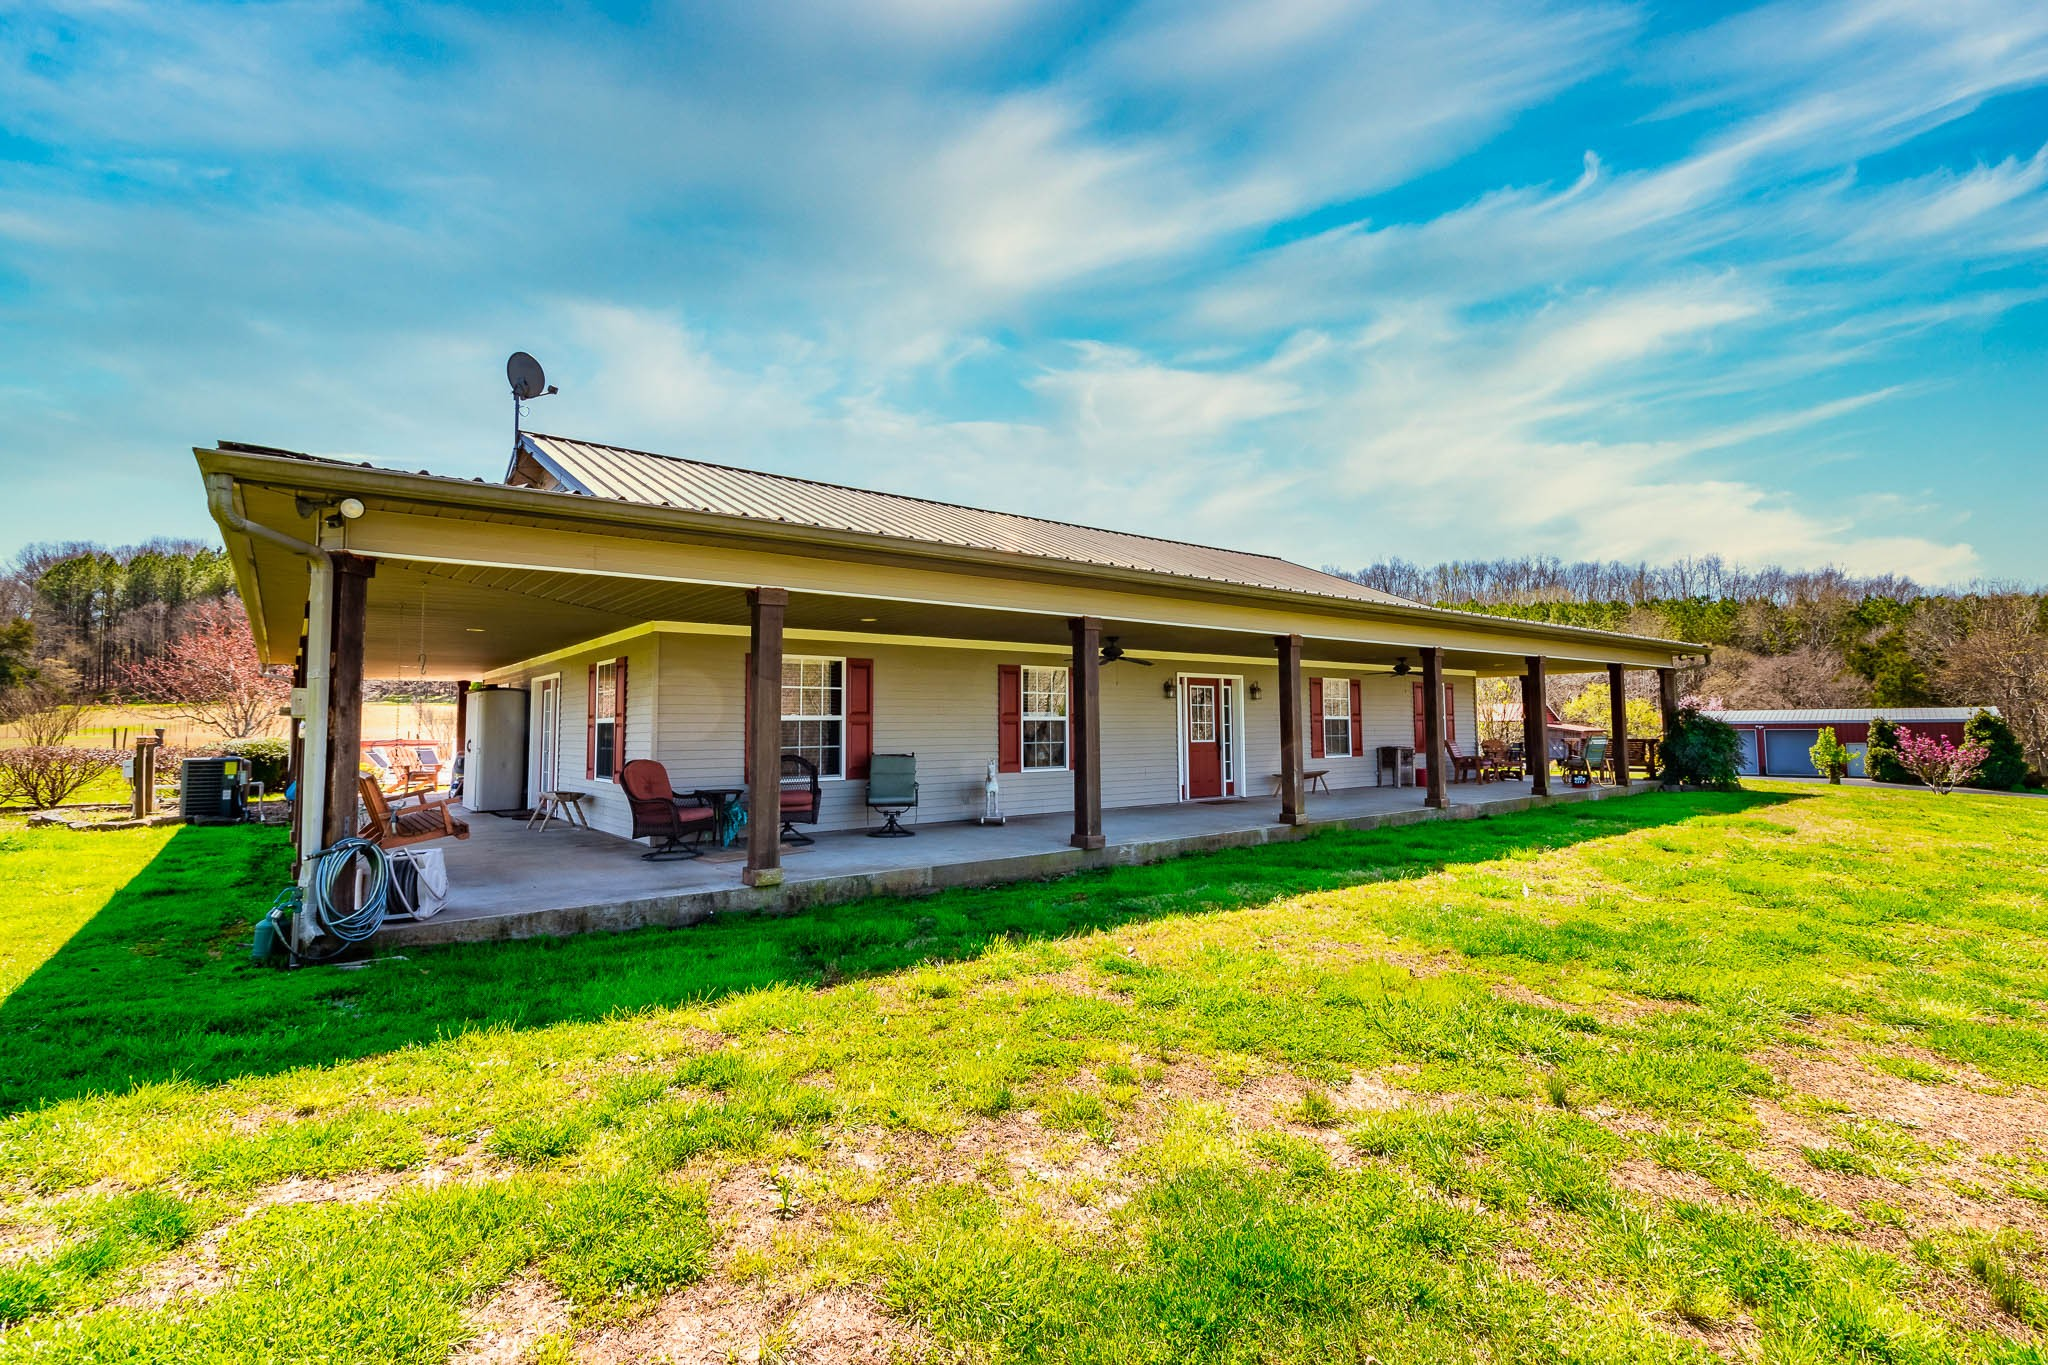 651 Shuler Branch Rd, Ethridge, Tennessee 38456, ,Farm And Agriculture,For Sale,651 Shuler Branch Rd,2238071